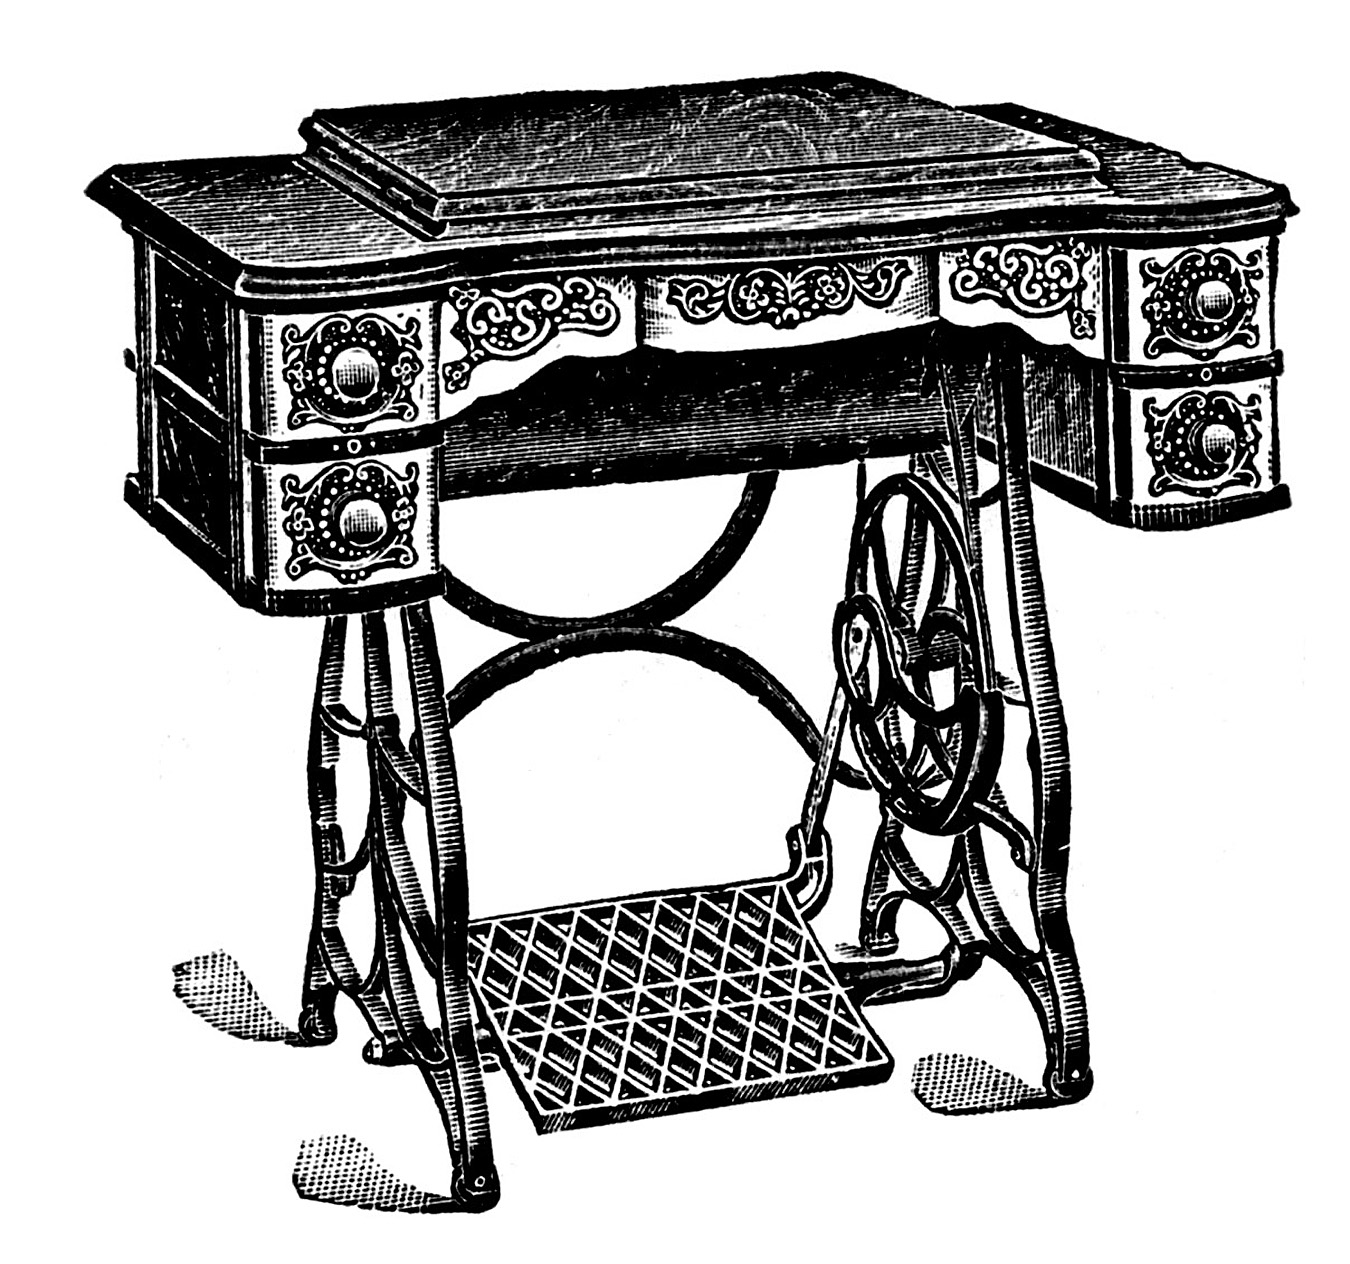 Clipart black and white old sewing machines picture royalty free download 6 Antique Sewing Machine Pictures! - The Graphics Fairy picture royalty free download